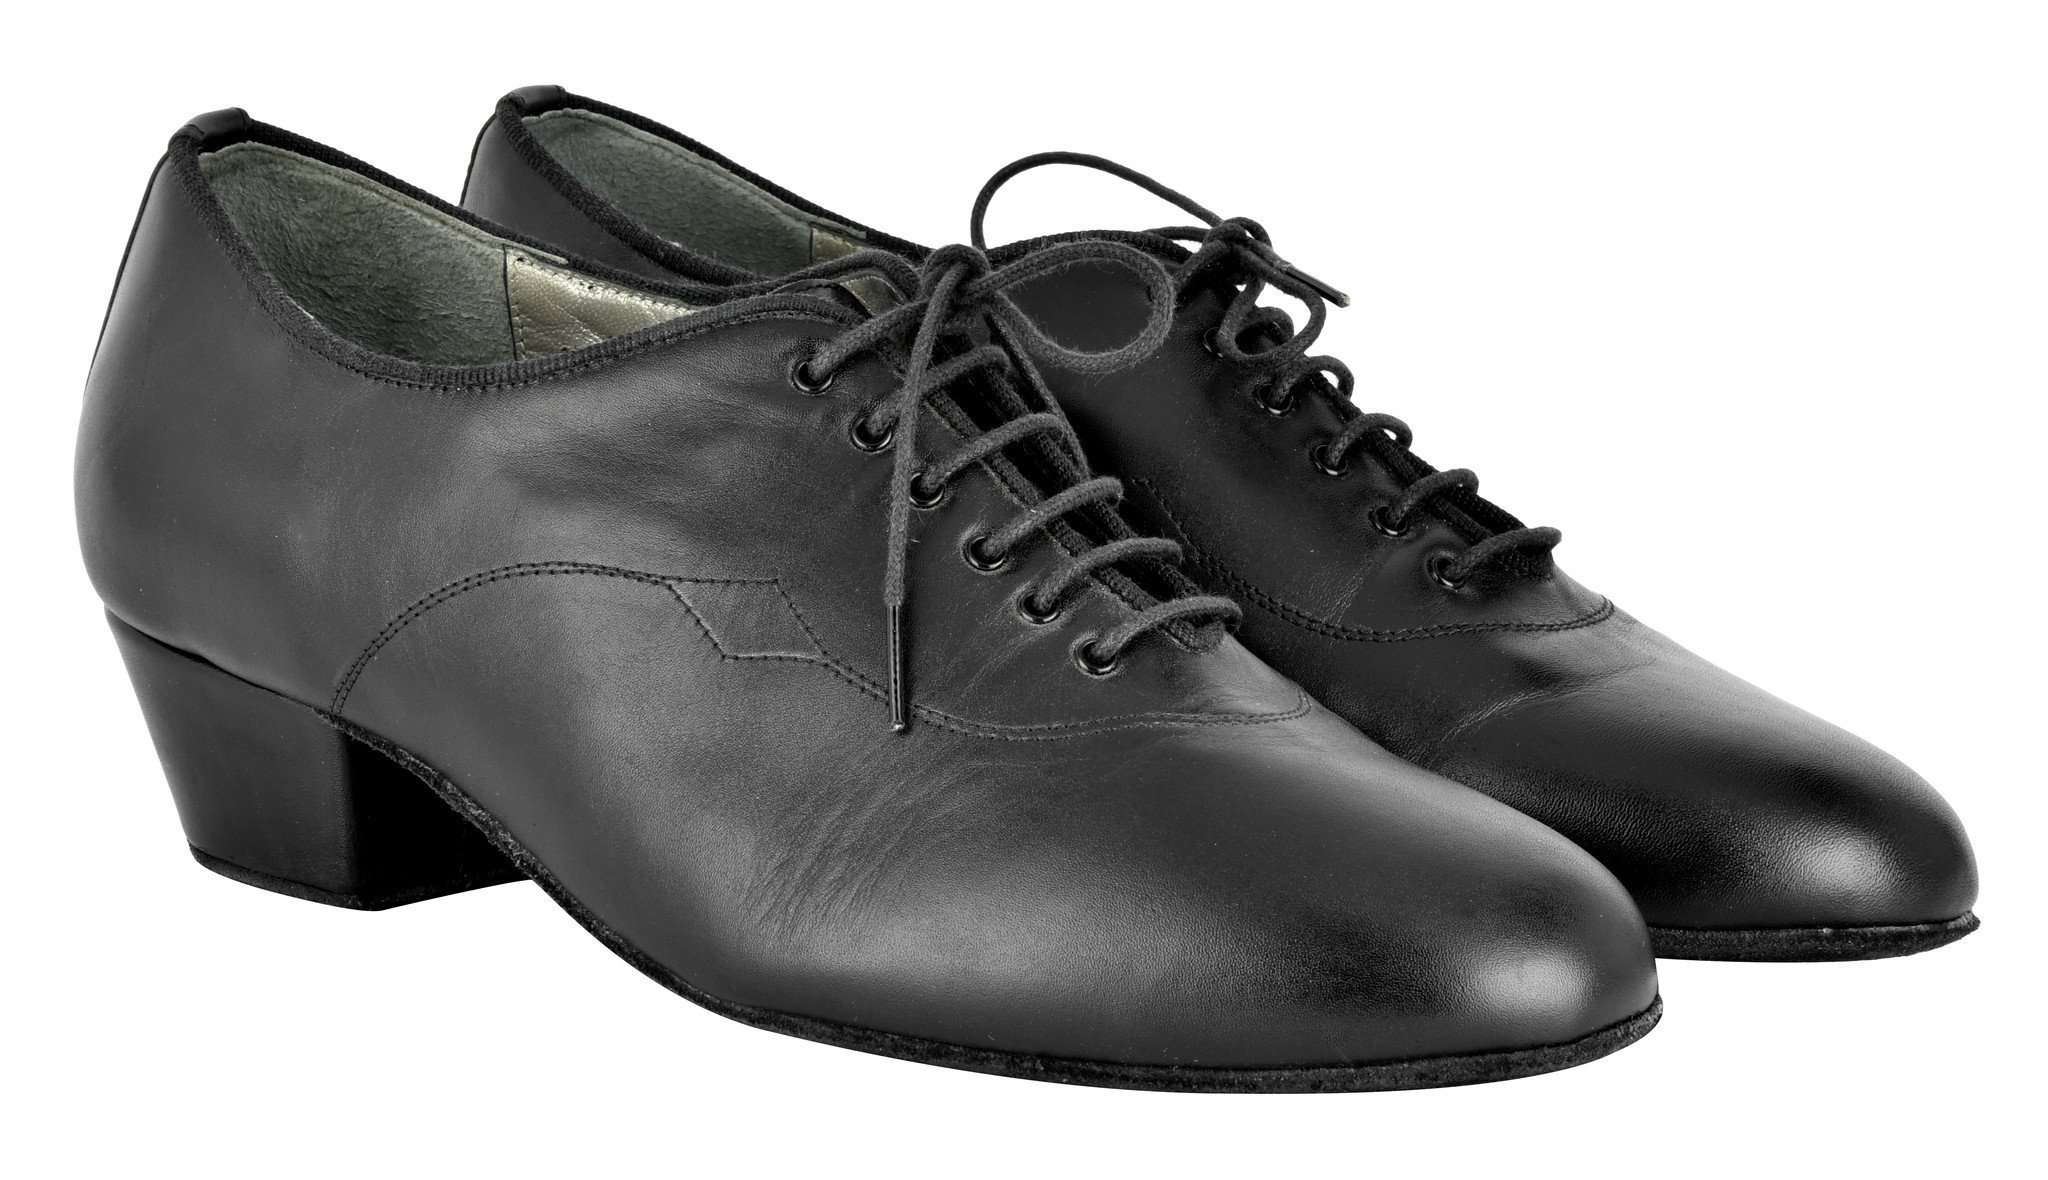 Gene Men's Dance Shoes - Anita Flavina